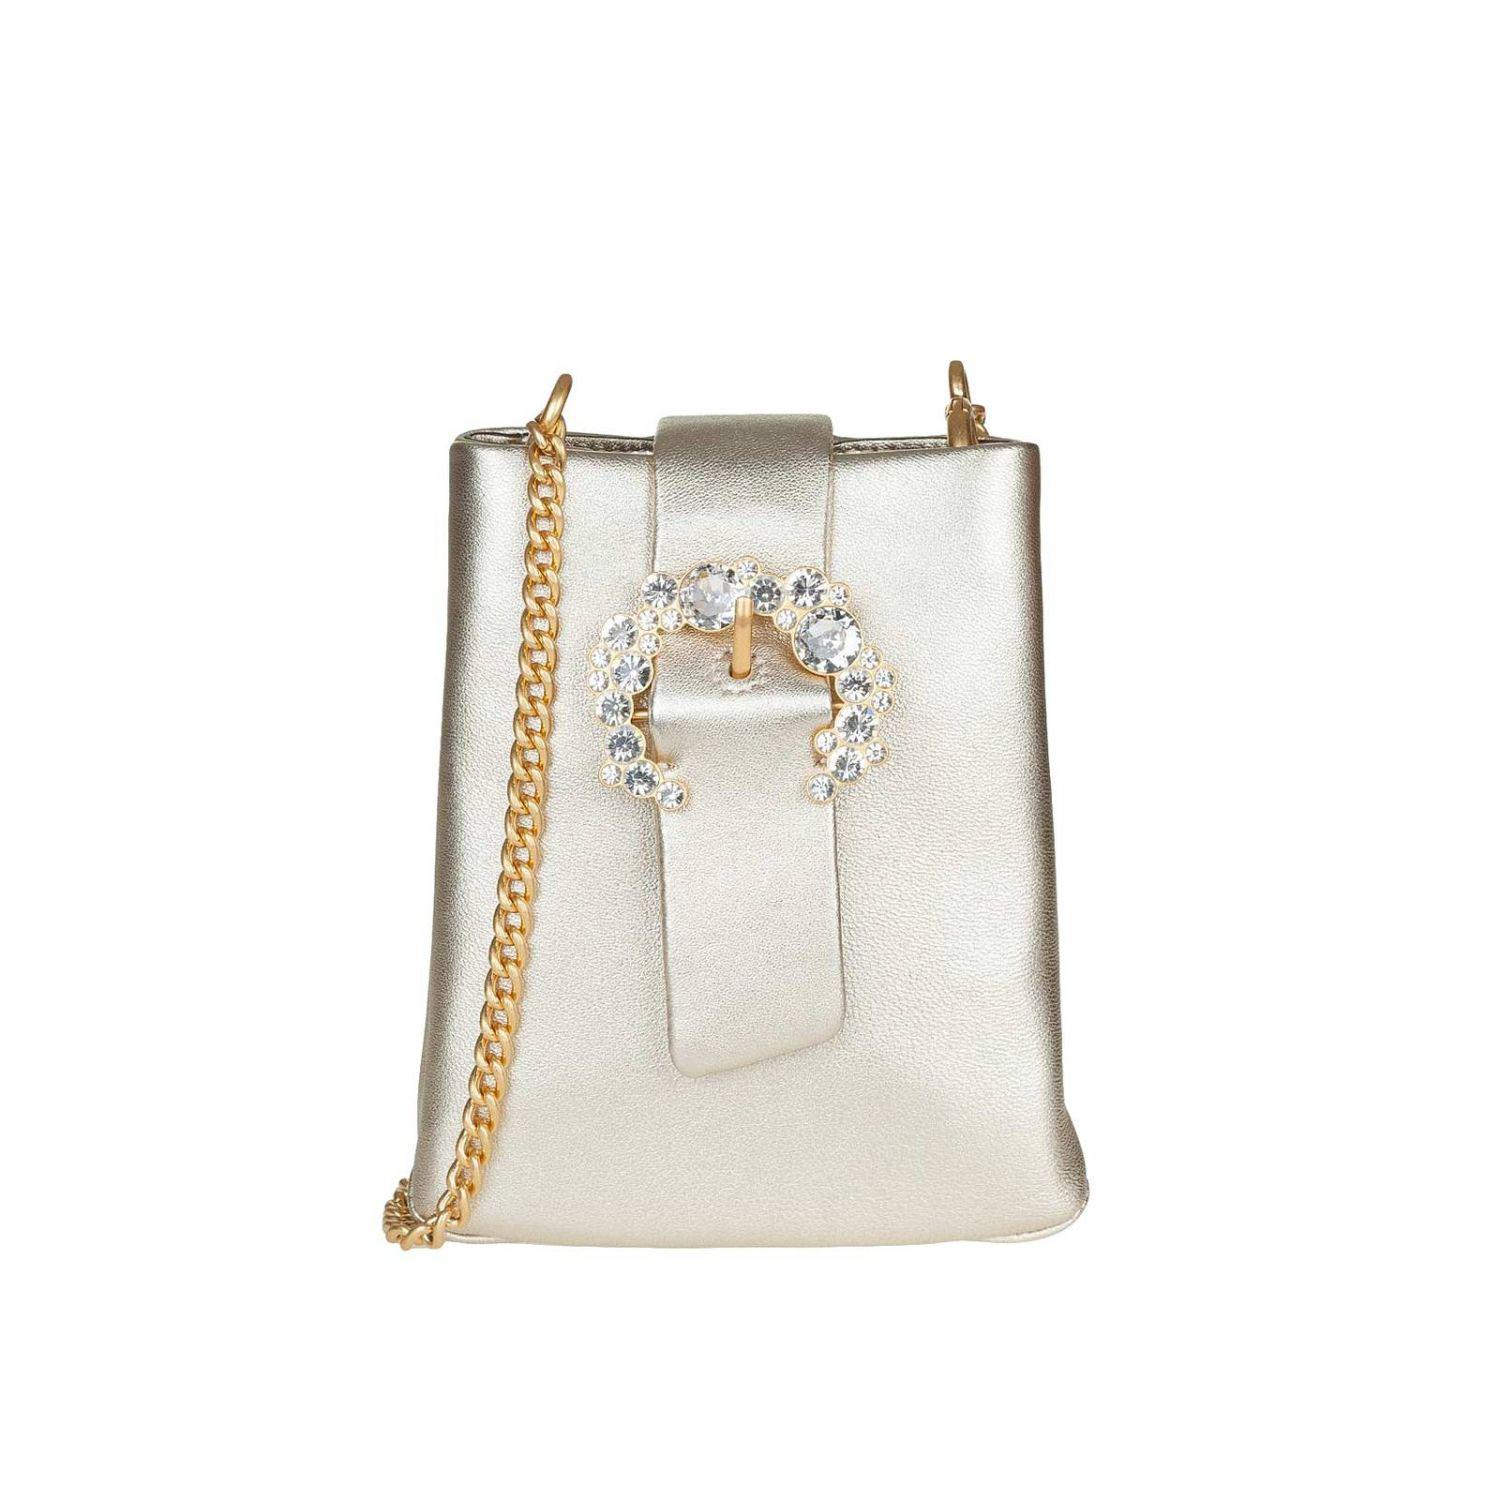 9ebe42840a9 Tory Burch Handbag Women in White - Lyst